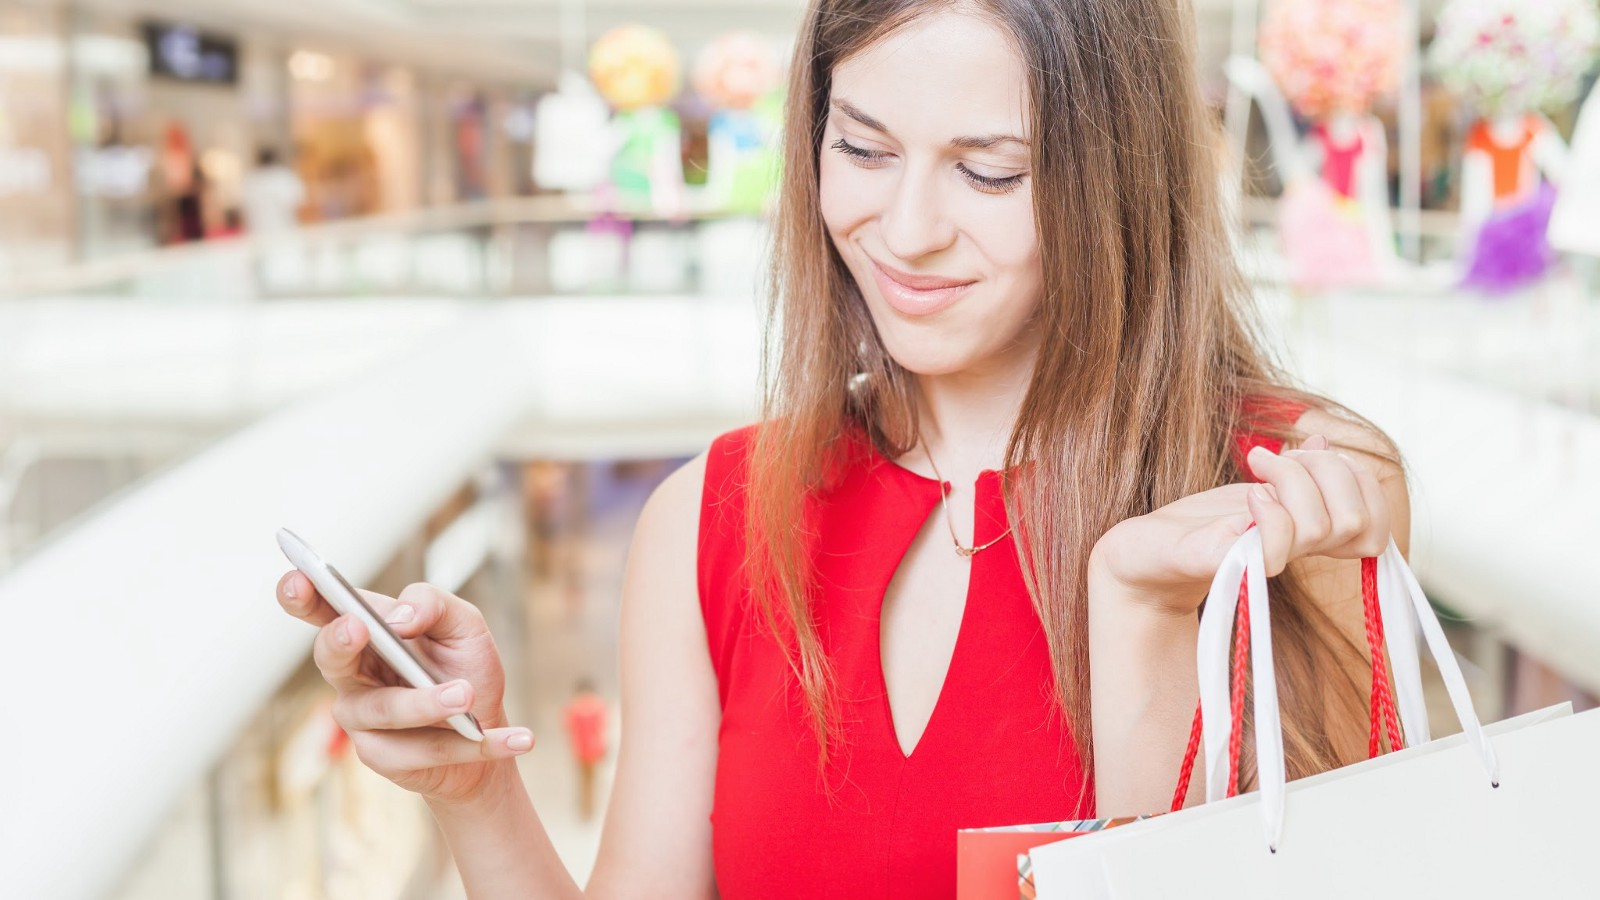 OMNICHANNEL CUSTOMER SERVICE: TIPS TO MULTIPLY THE BENEFITS IT PROVIDES!